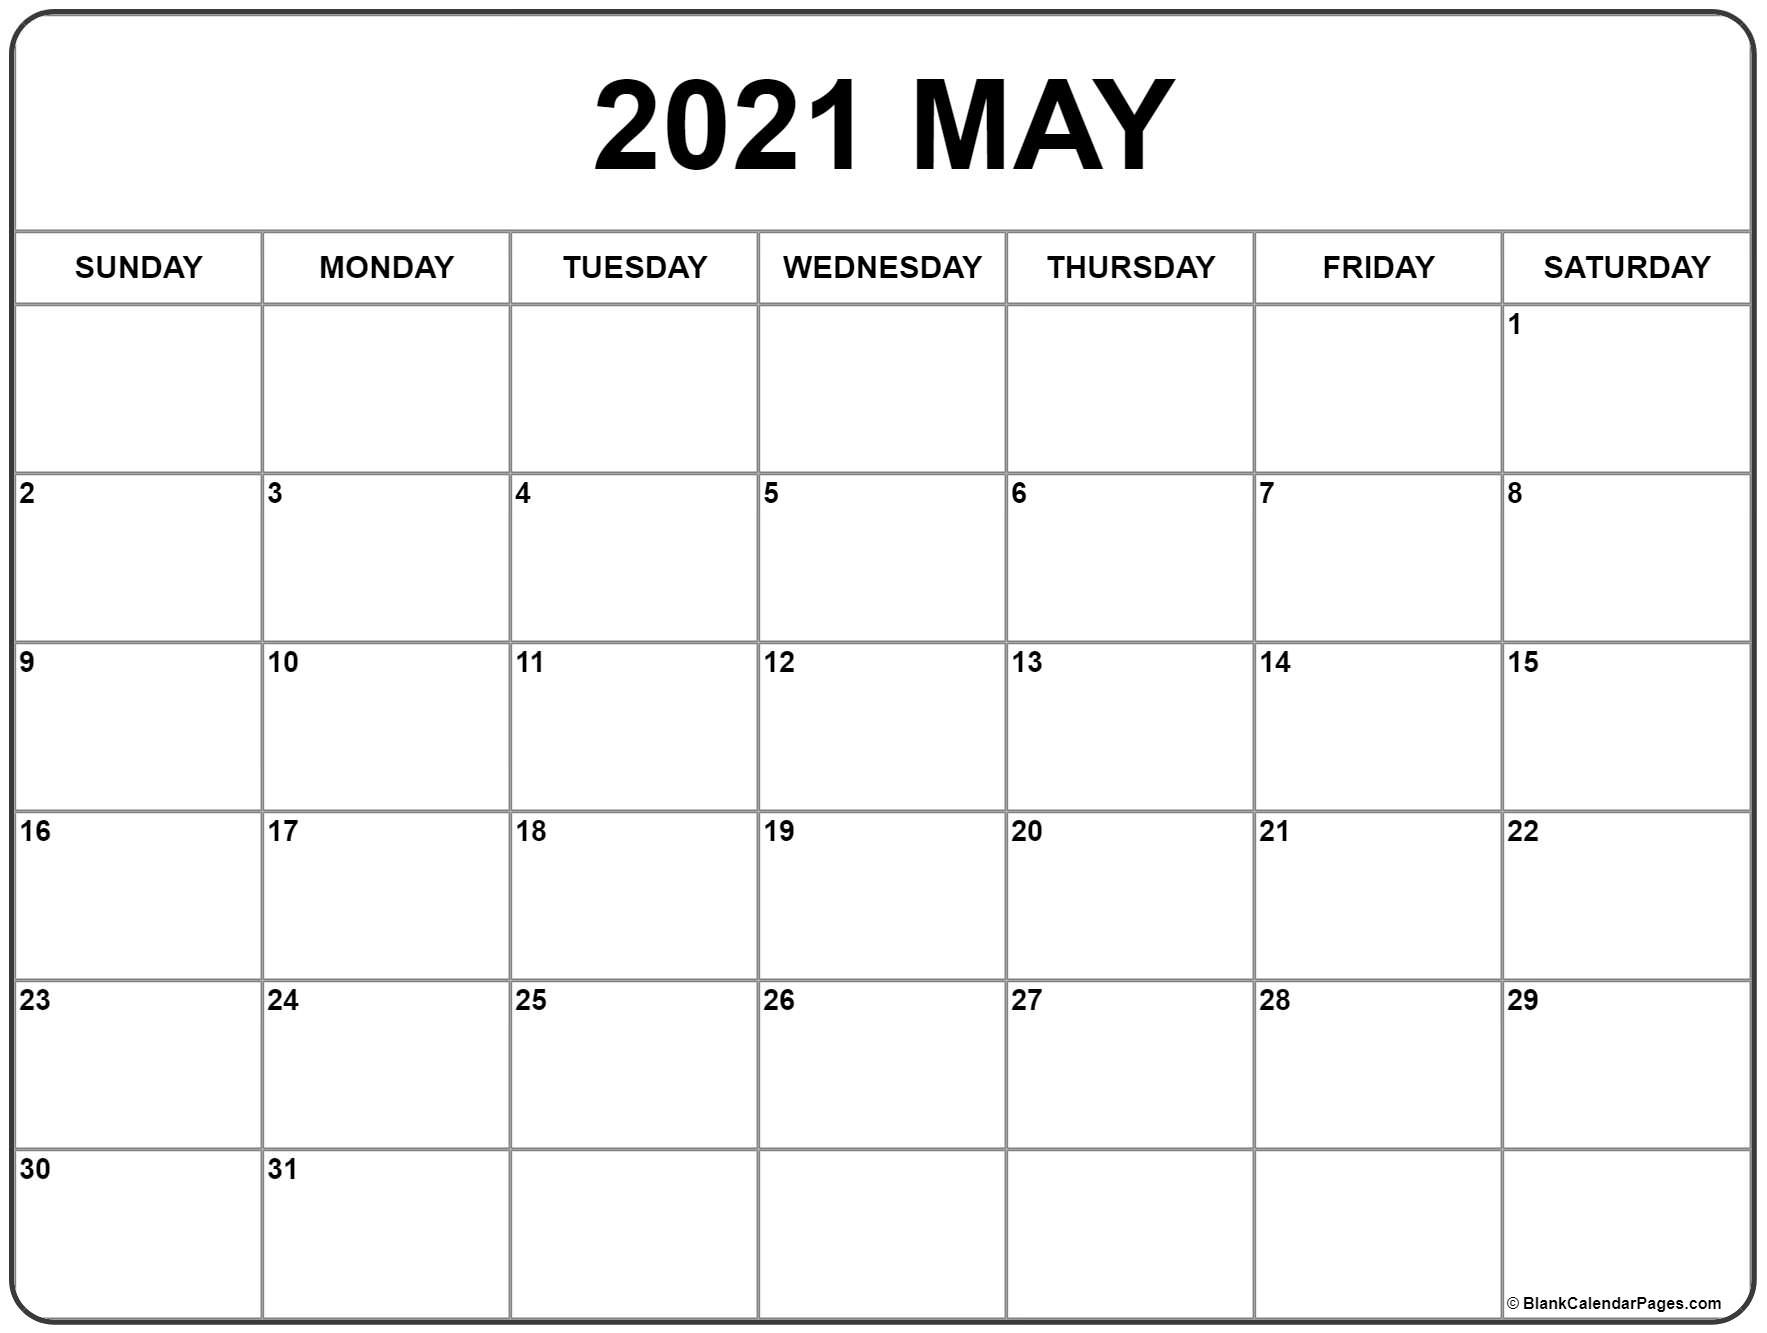 May 2021 Calendar | Free Printable Monthly Calendars  2021 Printable Calendar By Month